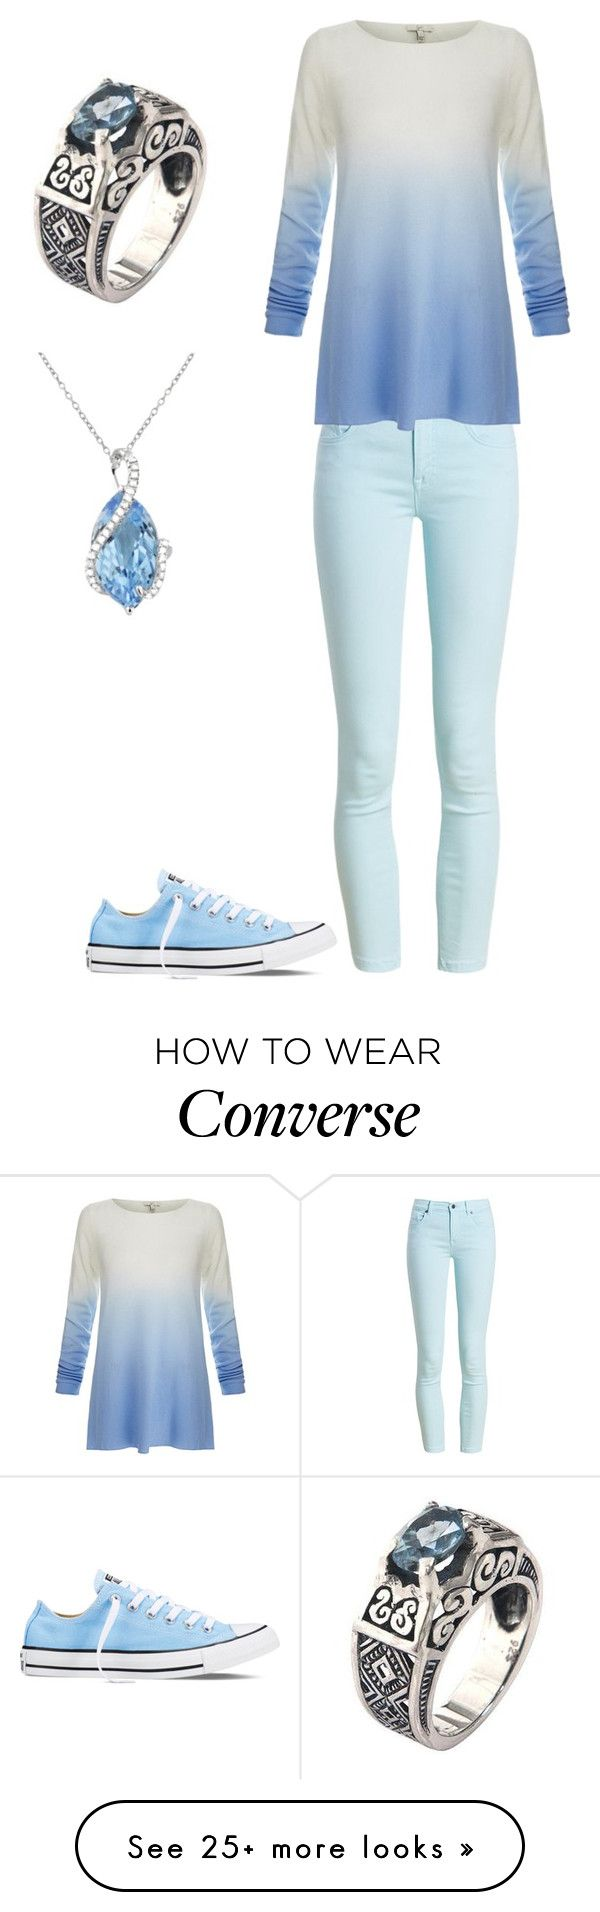 """Blue"" by killswitch2864 on Polyvore featuring Barbour, Joie, Converse, NOVICA and Effy Jewelry"